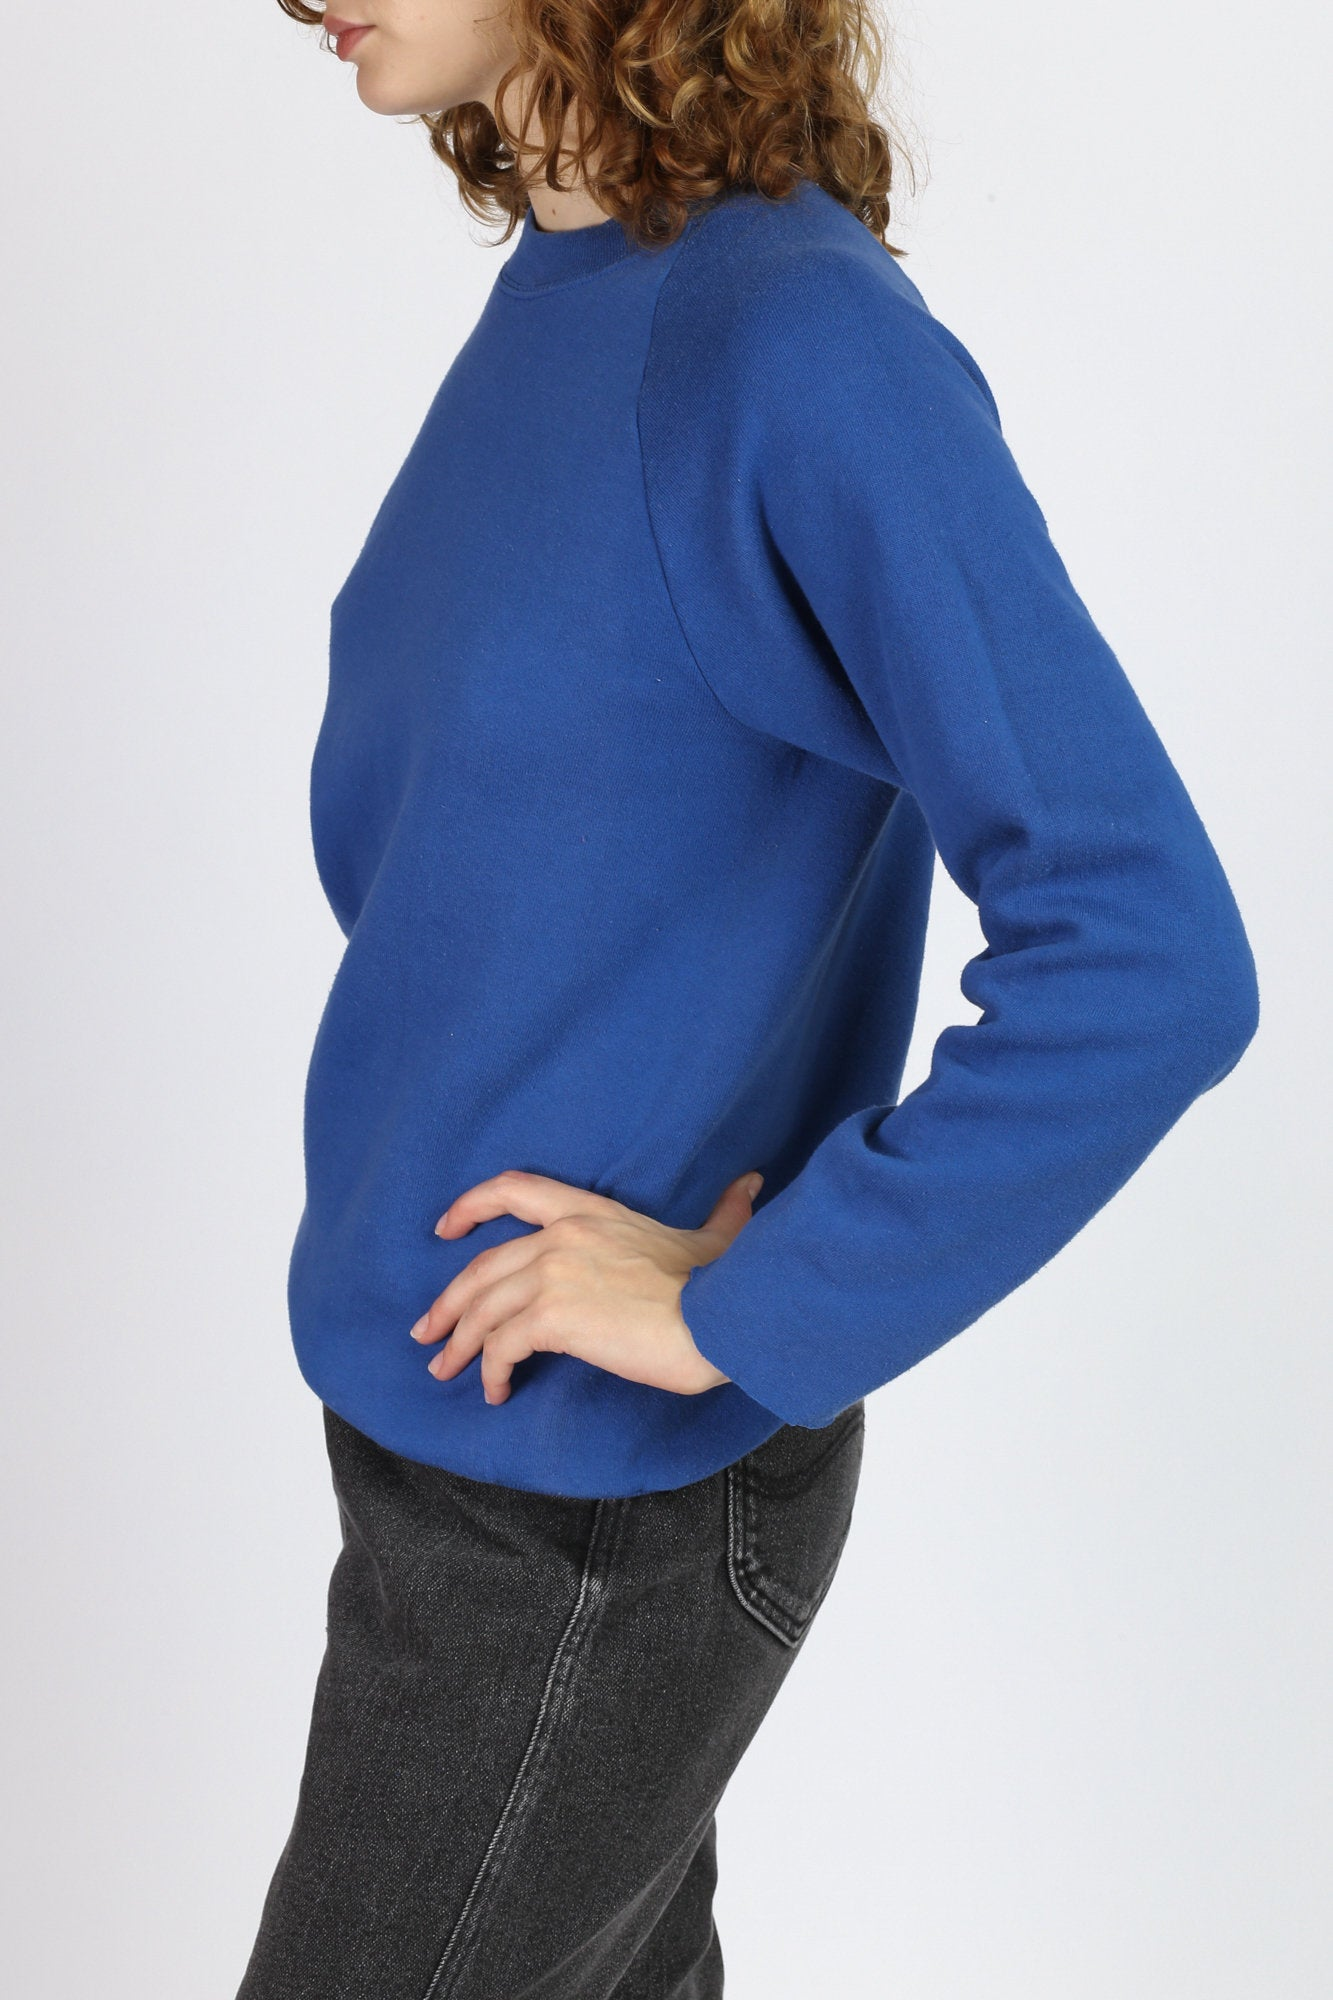 80s Plain Blue Raglan Sweatshirt - Medium